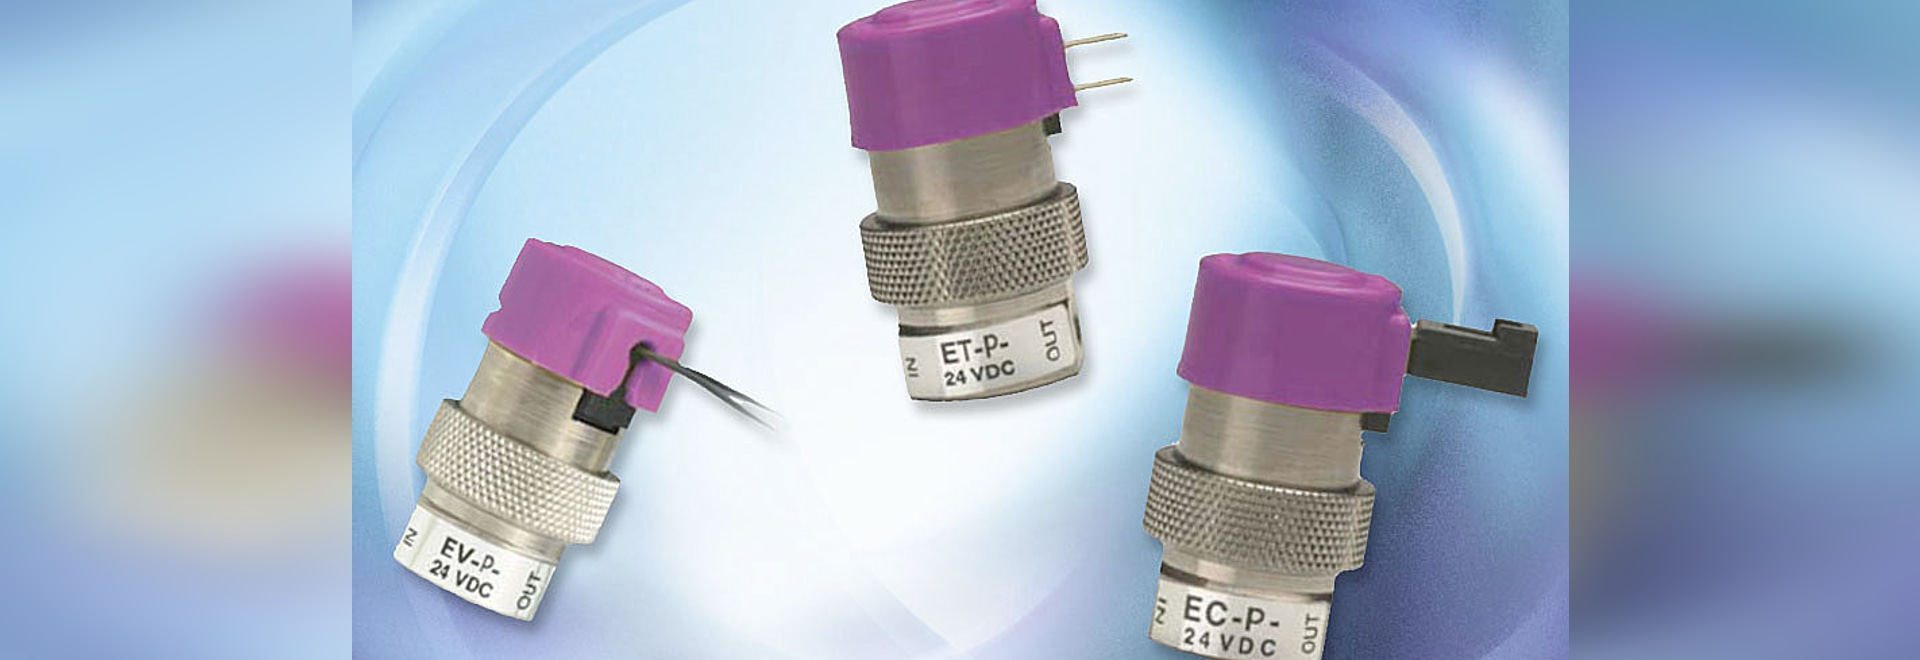 The Clippard EVP Series Proportional Control Valves